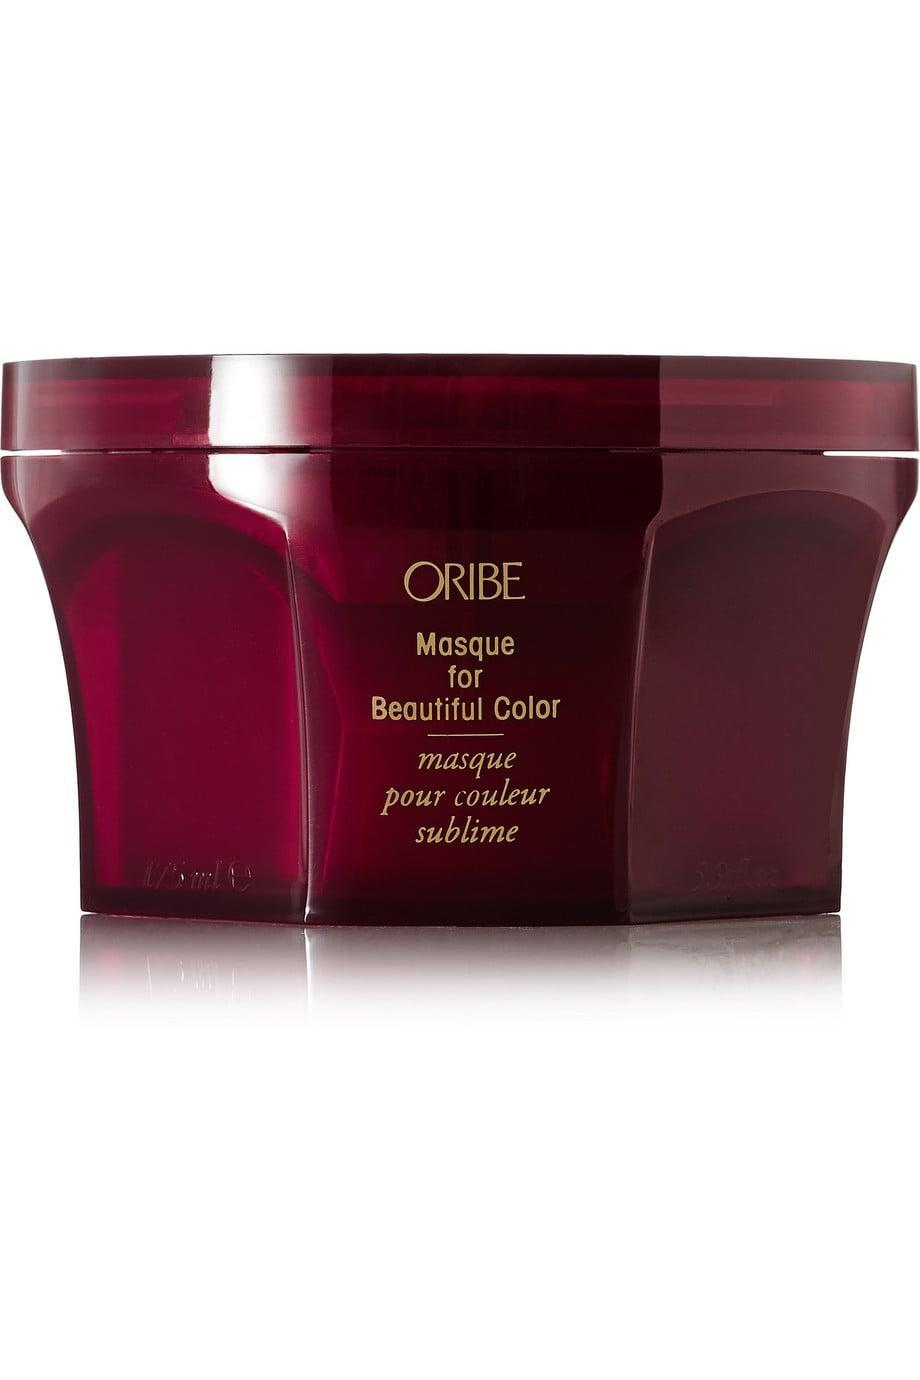 <p>If you style and color your hair, try treating your damaged tresses with this <span>Oribe Masque For Beautiful Color</span> ($63). It is made with watermelon extract and wild mango butter, which help to hydrate and strengthen your hair.</p>